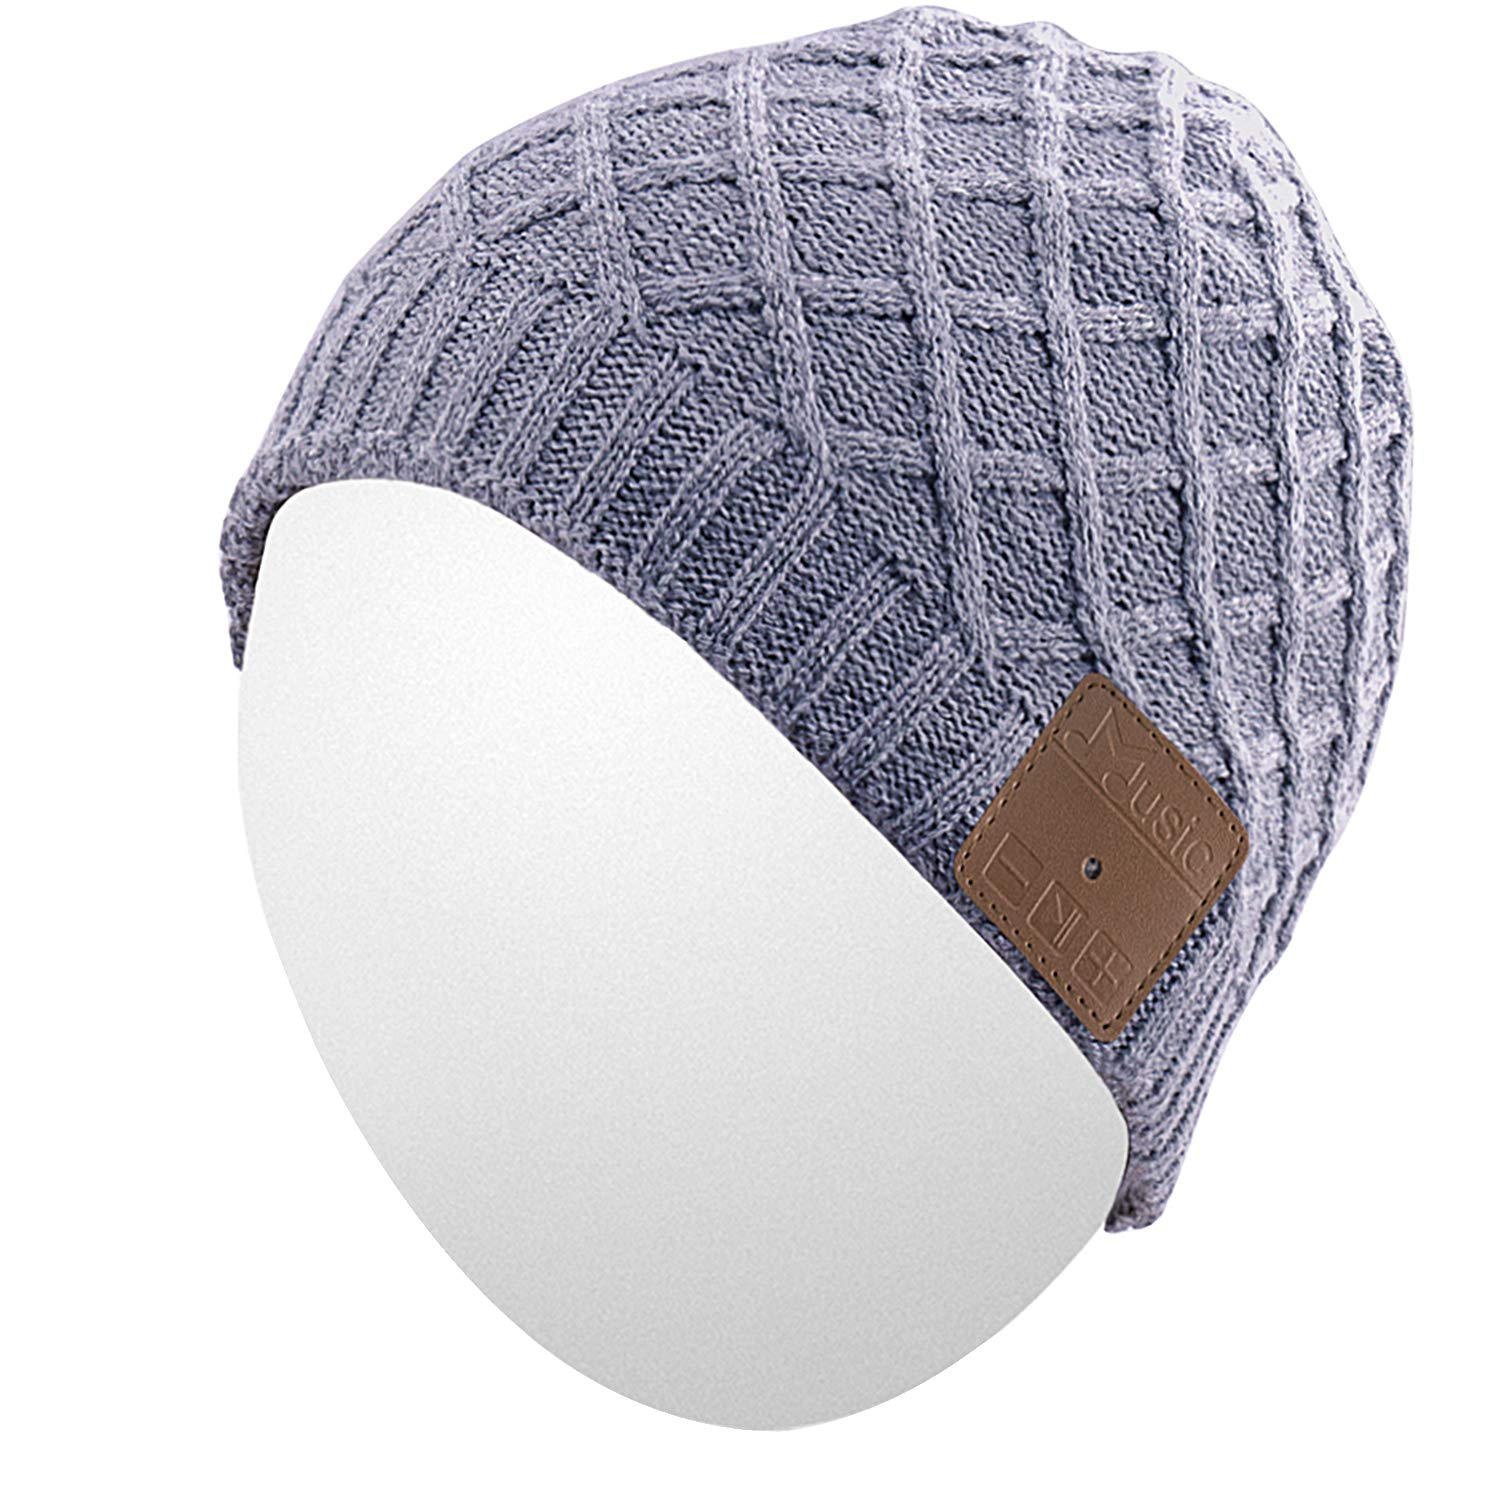 Qshell Winter Washable Bluetooth Music Beanie Warm Soft Trendy Short Striped Hat Cap with Wireless Headphone Headset Earphone Mic Hands Free for Excrise Gym Sports Fitness Running Skiing - Gray